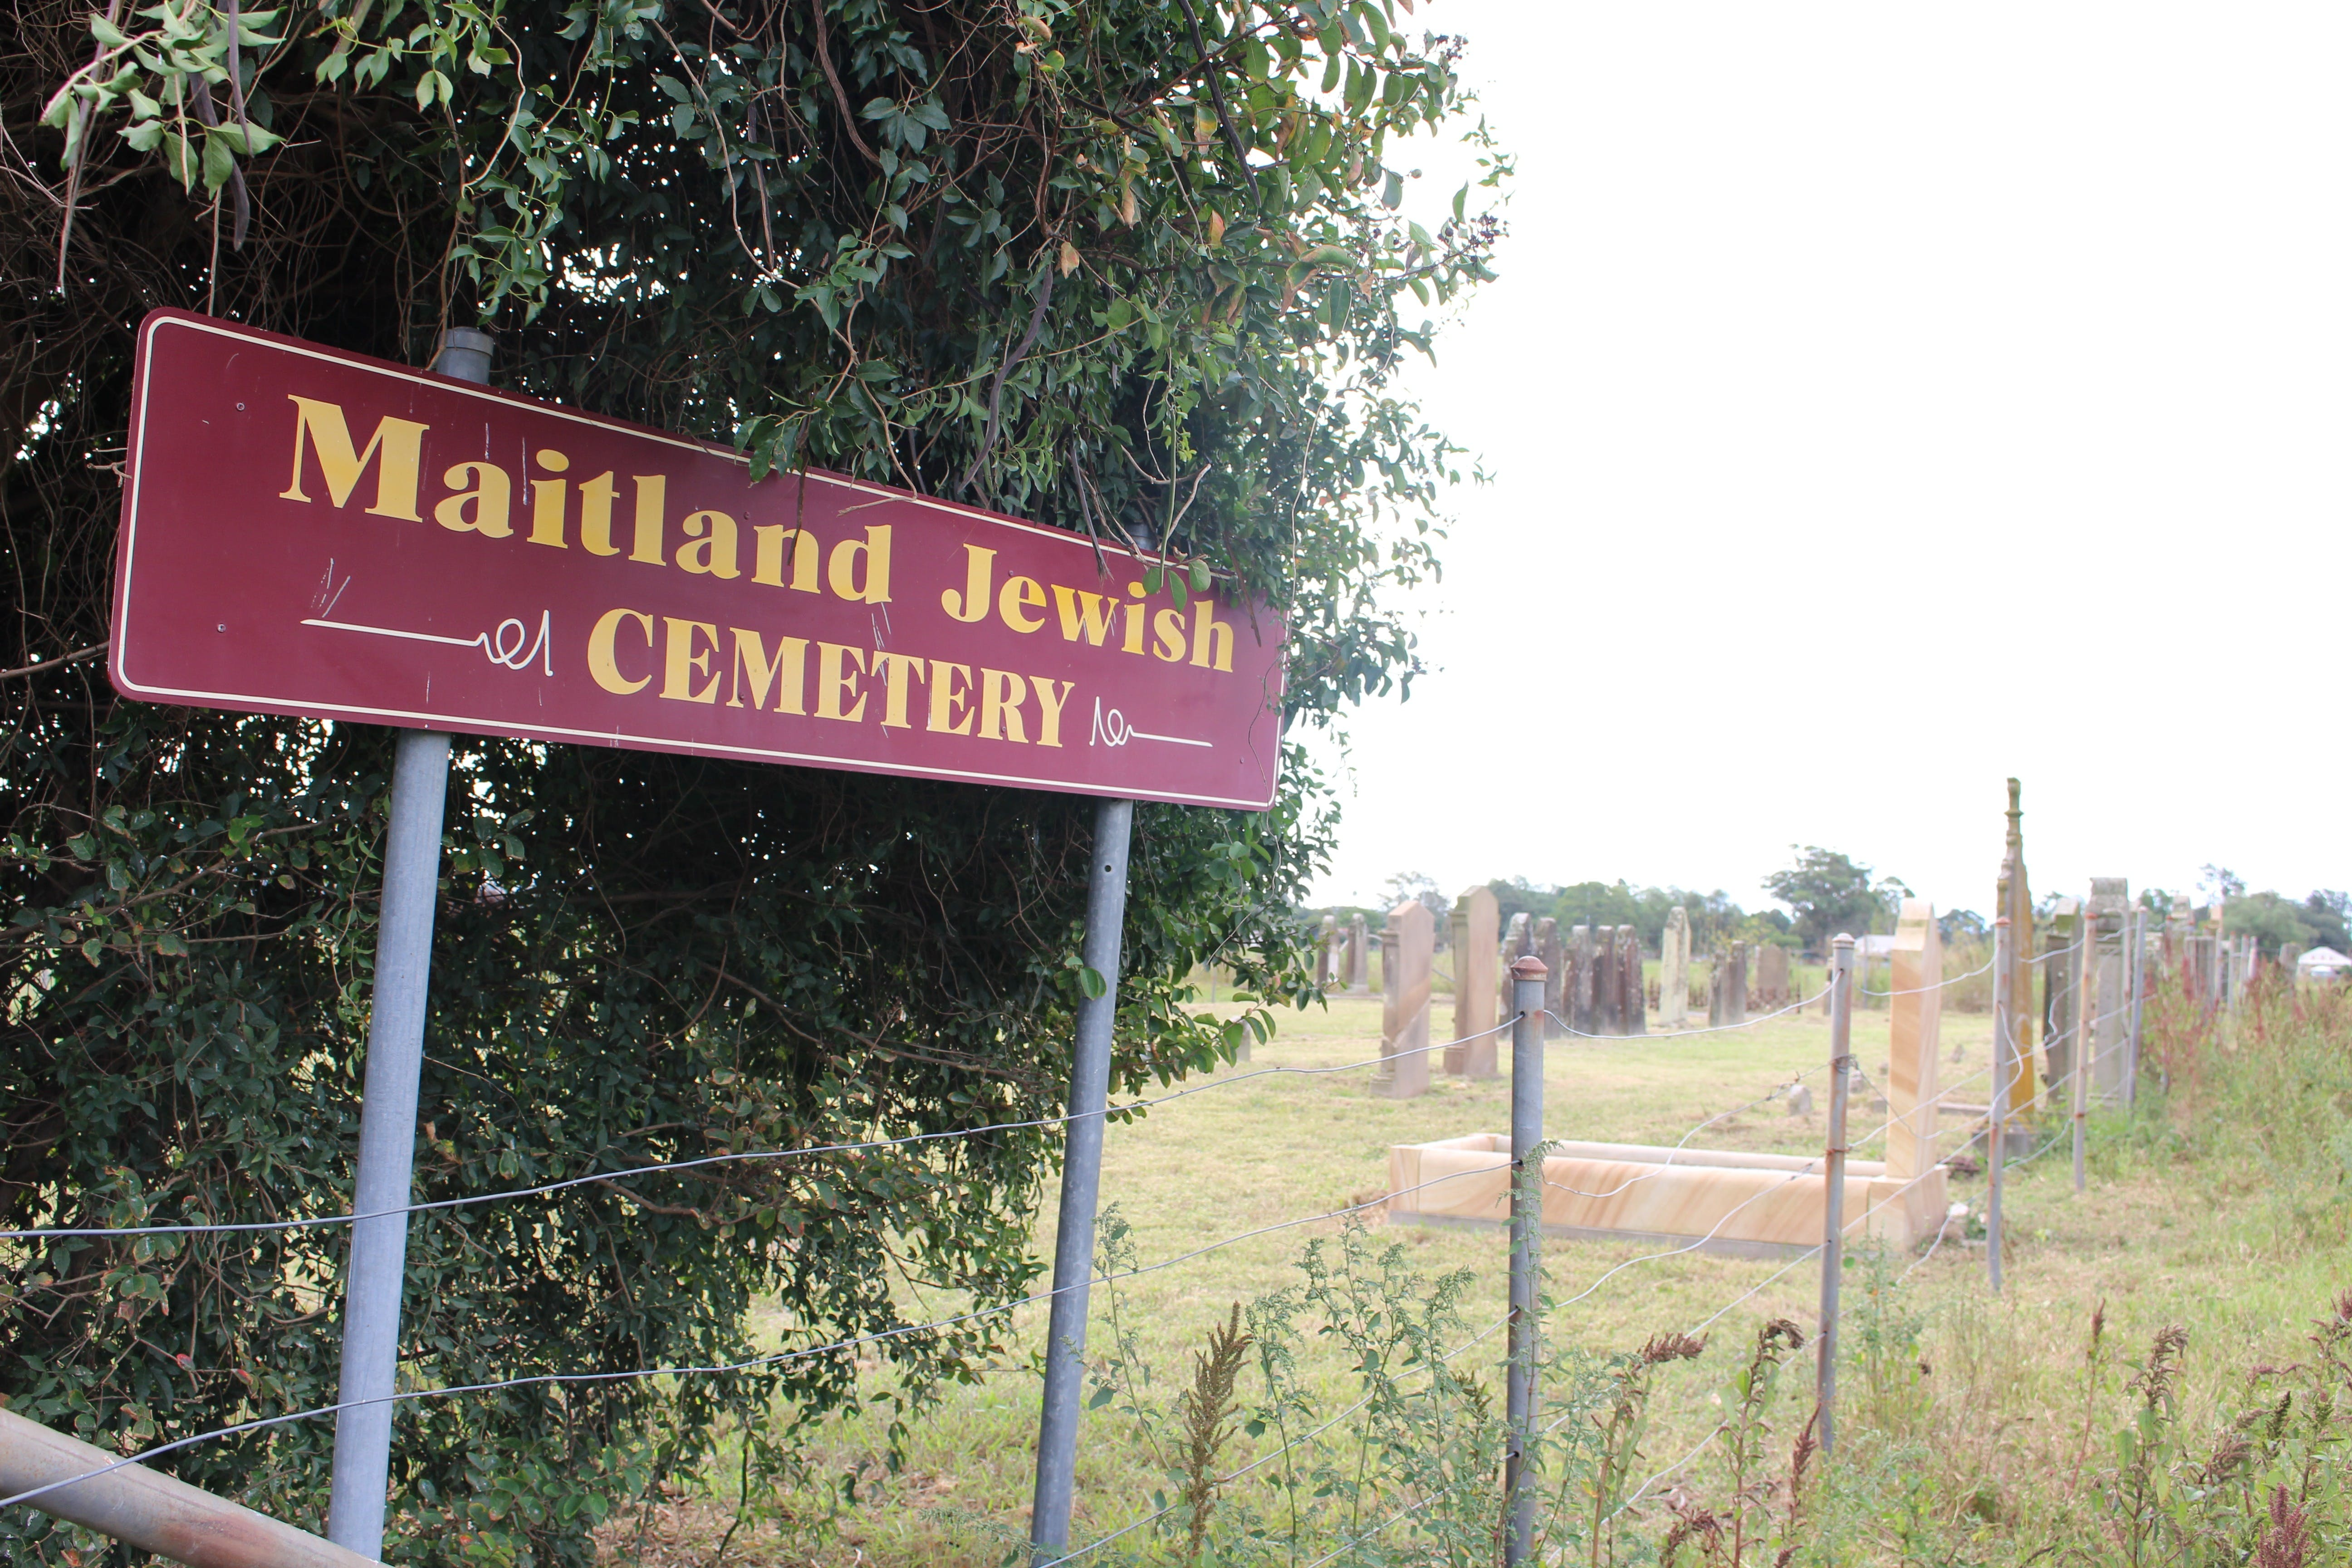 Maitland Jewish Cemetery - Accommodation Coffs Harbour